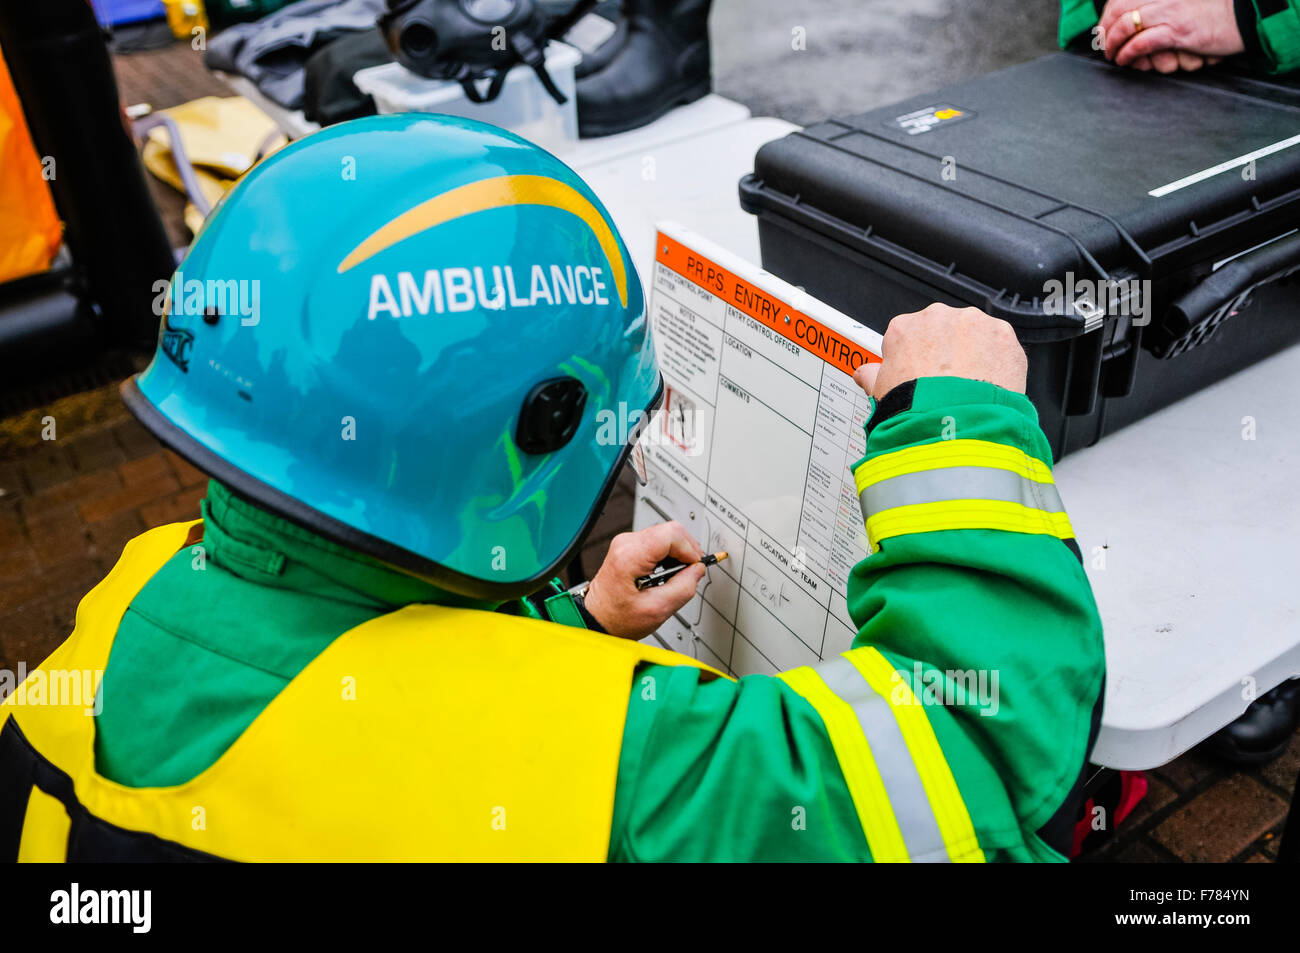 Northern Ireland. 26th November, 2015. An incident officer with the Northern Ireland Ambulance Service updates a - Stock Image